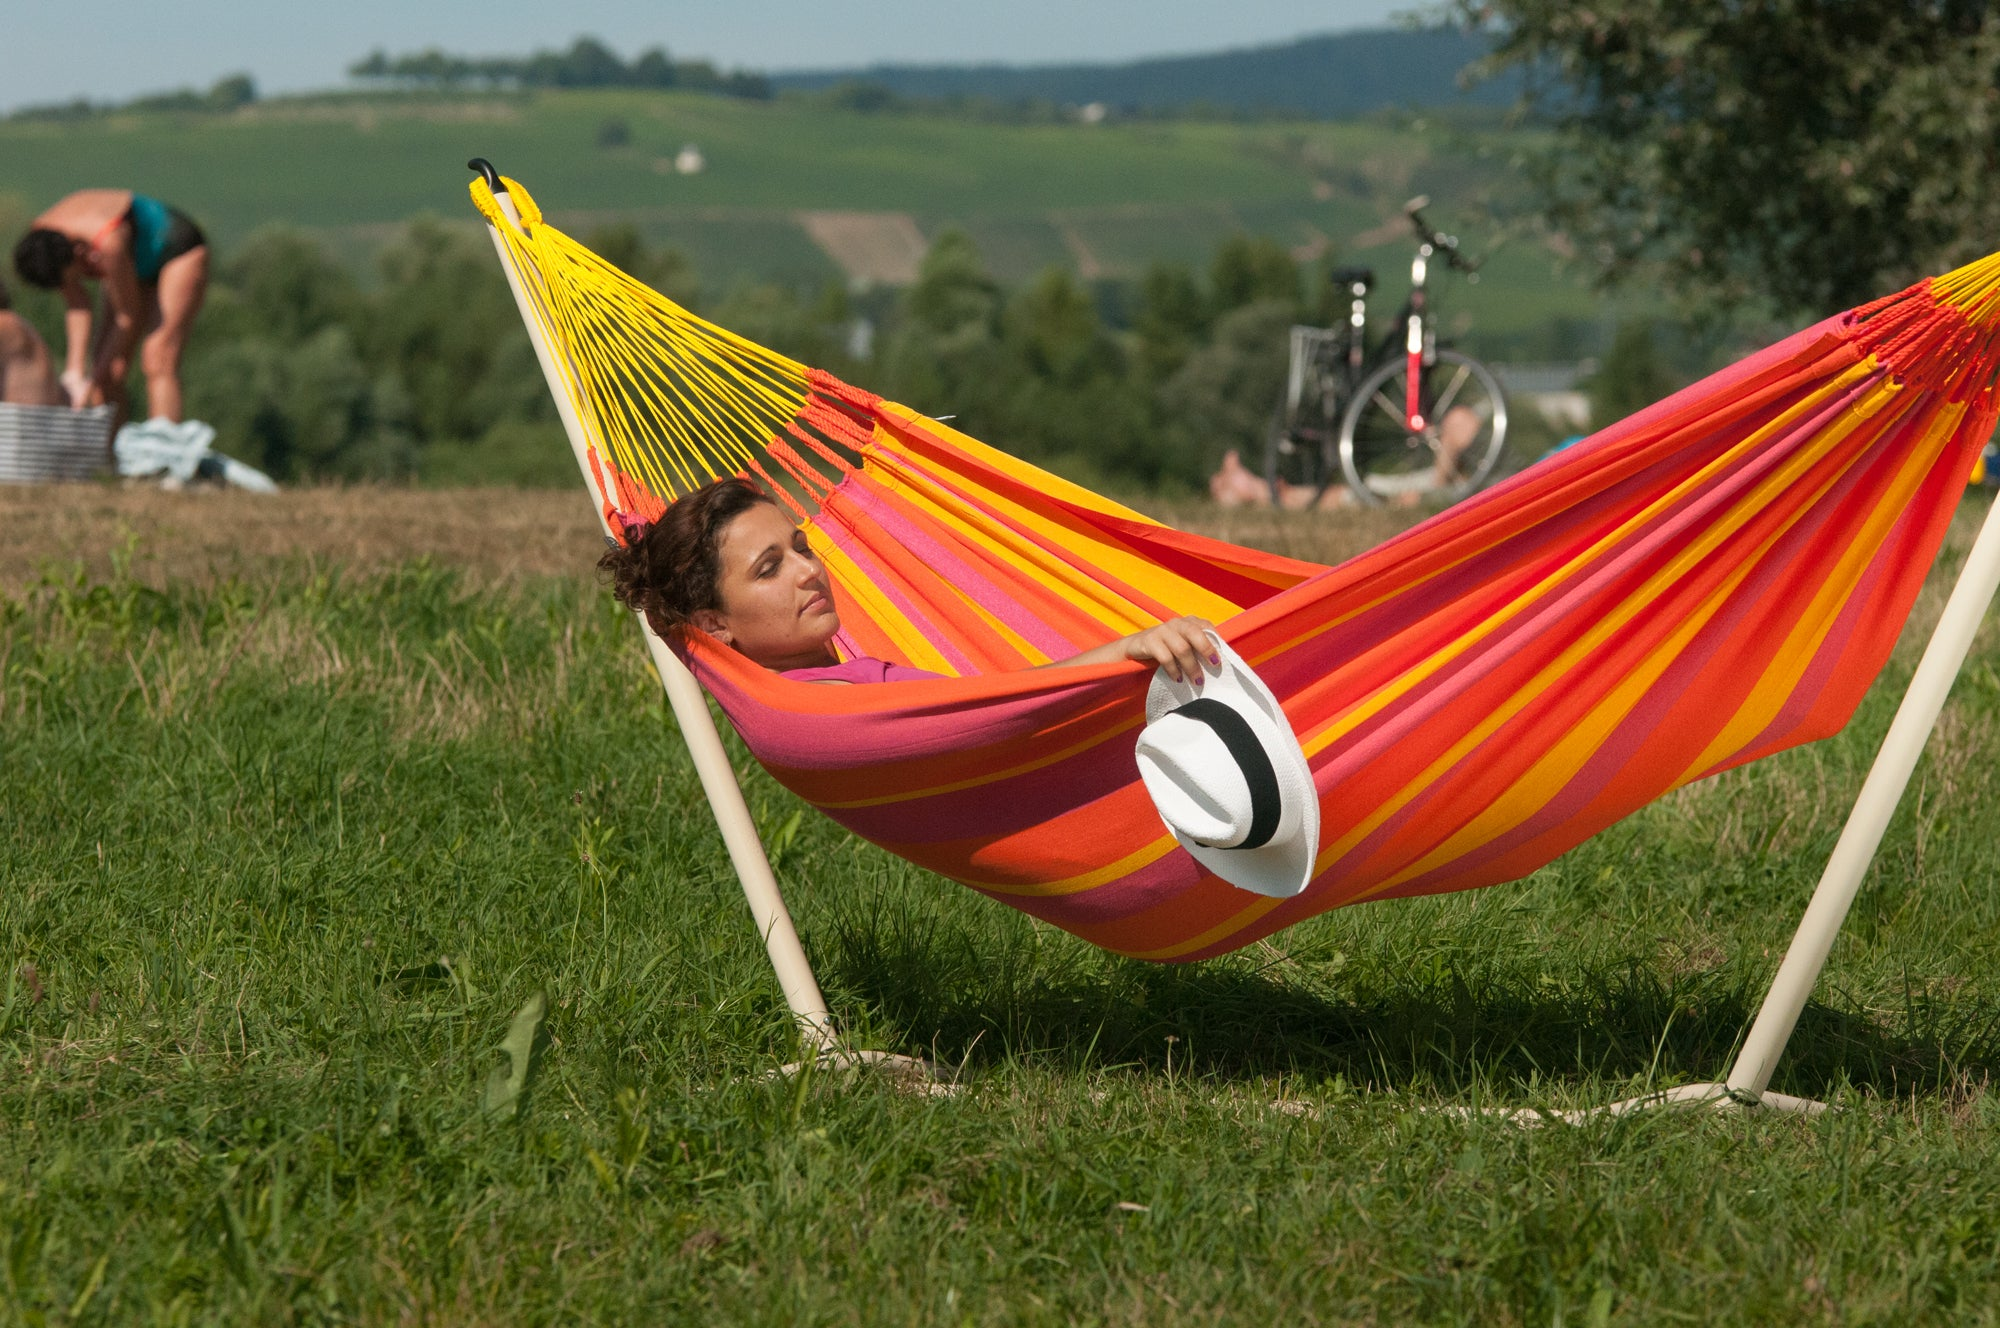 THE IMPACT OF HAMMOCK ON POSTURE